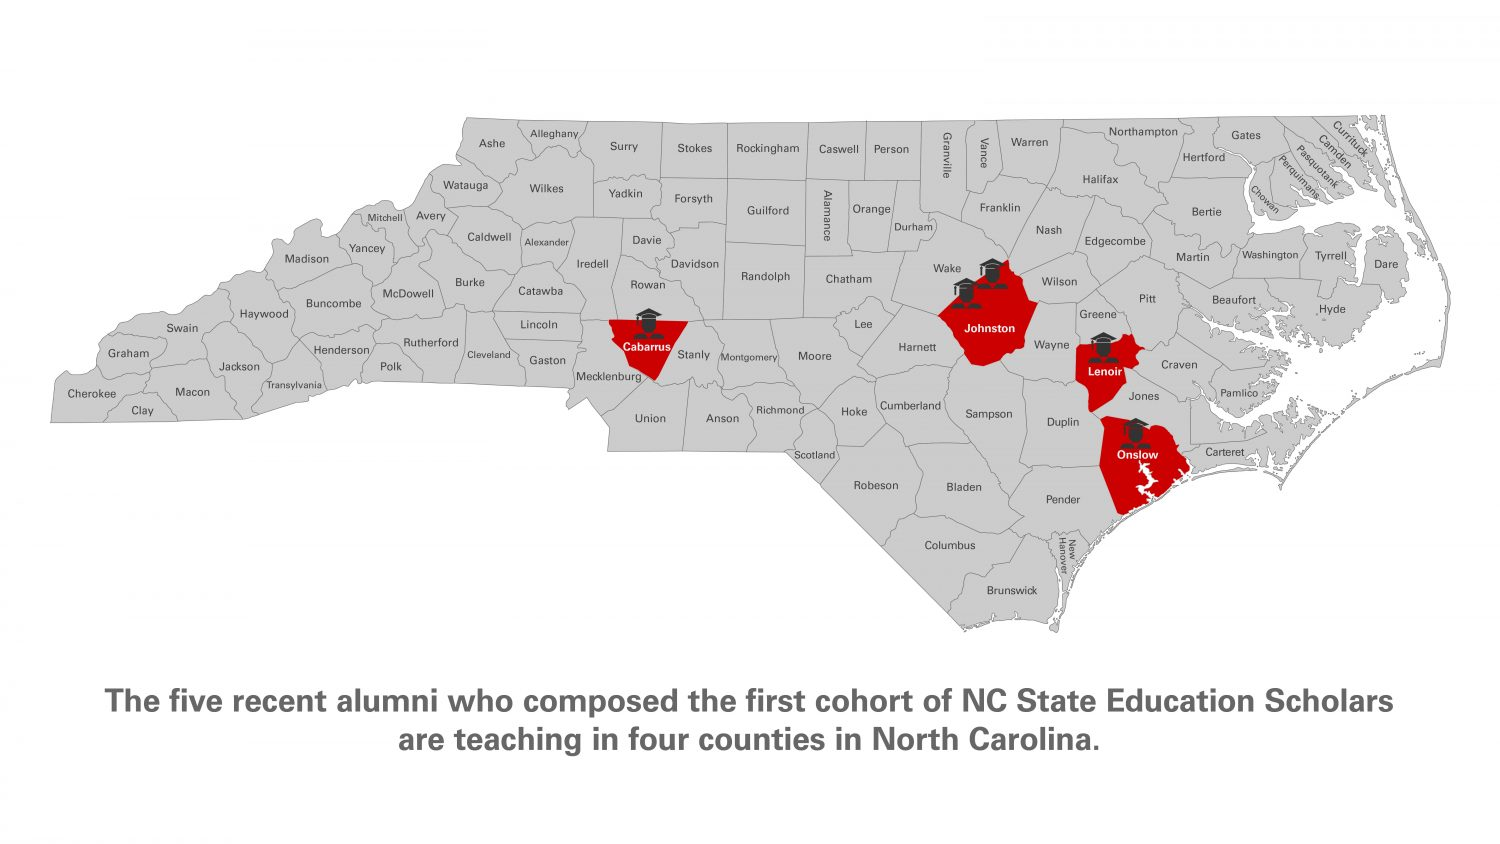 NC State Education Scholars Cohort I are teaching in four counties in North Carolina.